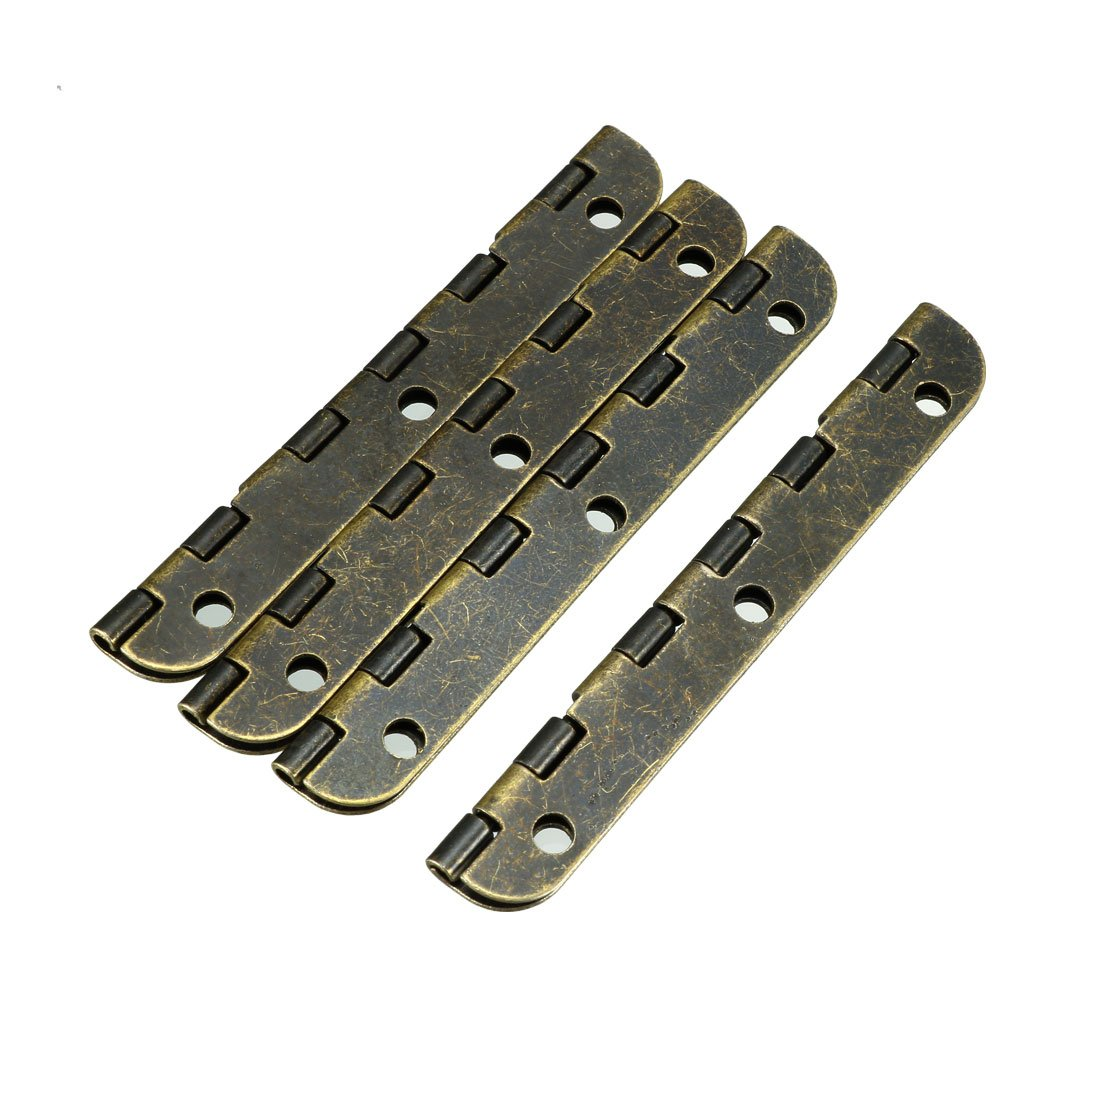 uxcell 2.56 Antique Bronze Hinges Retro Hinge Replacement with Screws 4pcs